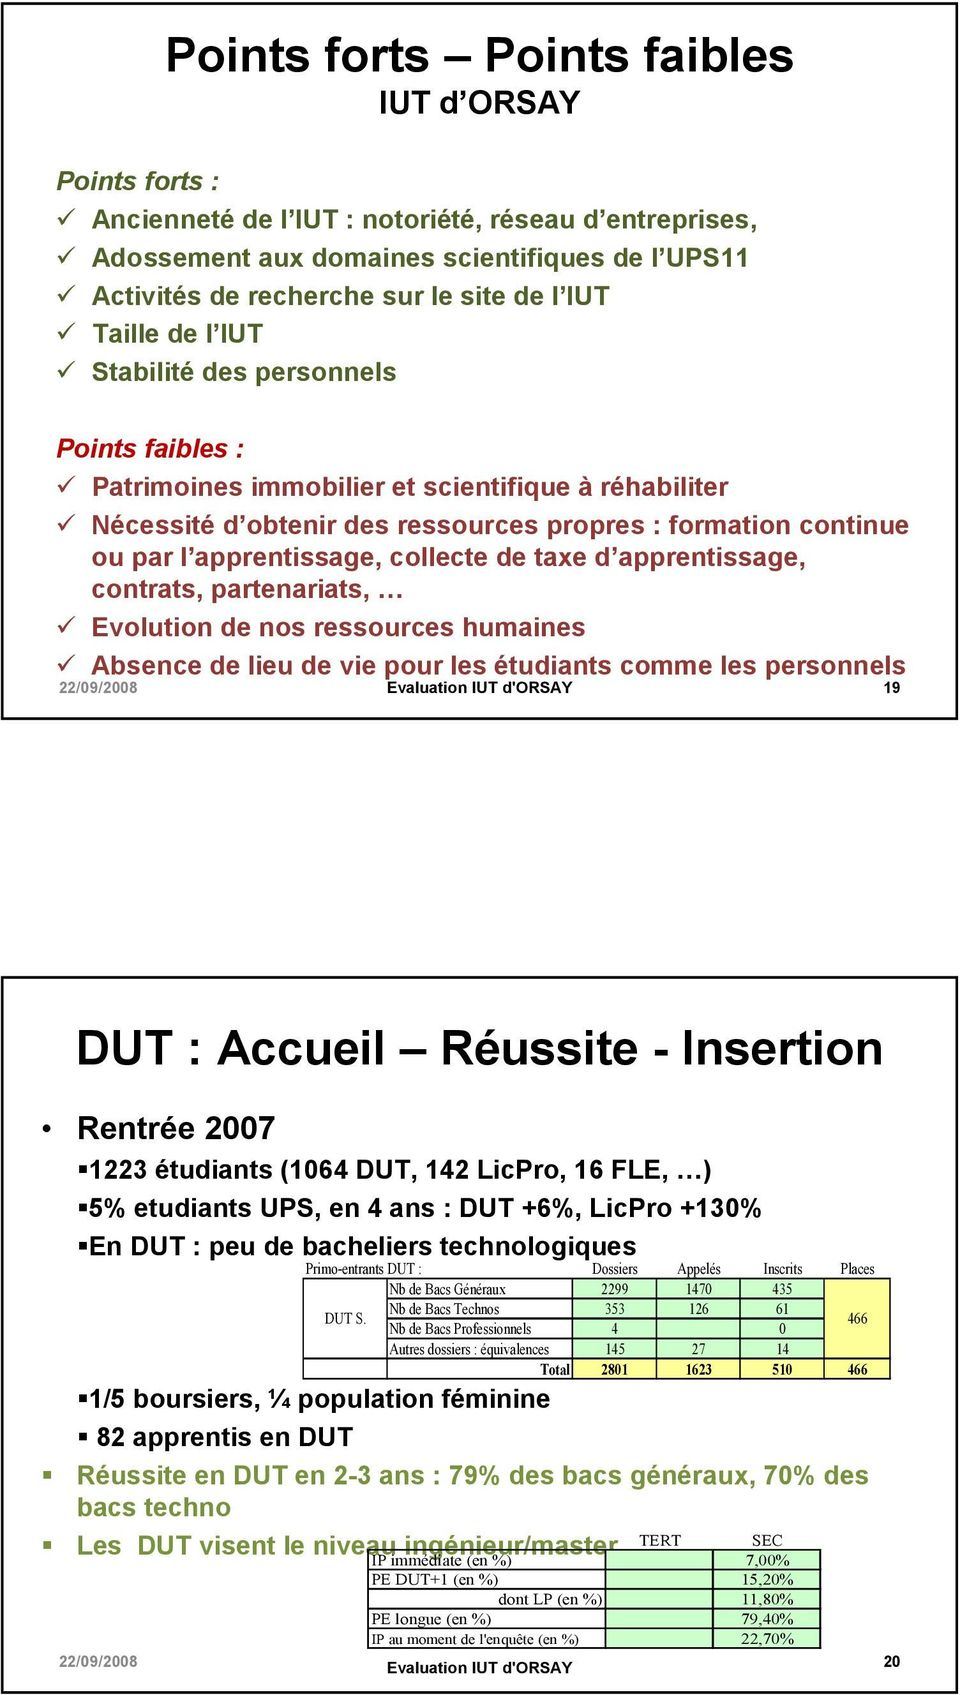 apprentissage, collecte de taxe d apprentissage, contrats, partenariats, Evolution de nos ressources humaines Absence de lieu de vie pour les étudiants comme les personnels d'orsay 19 DUT : Accueil